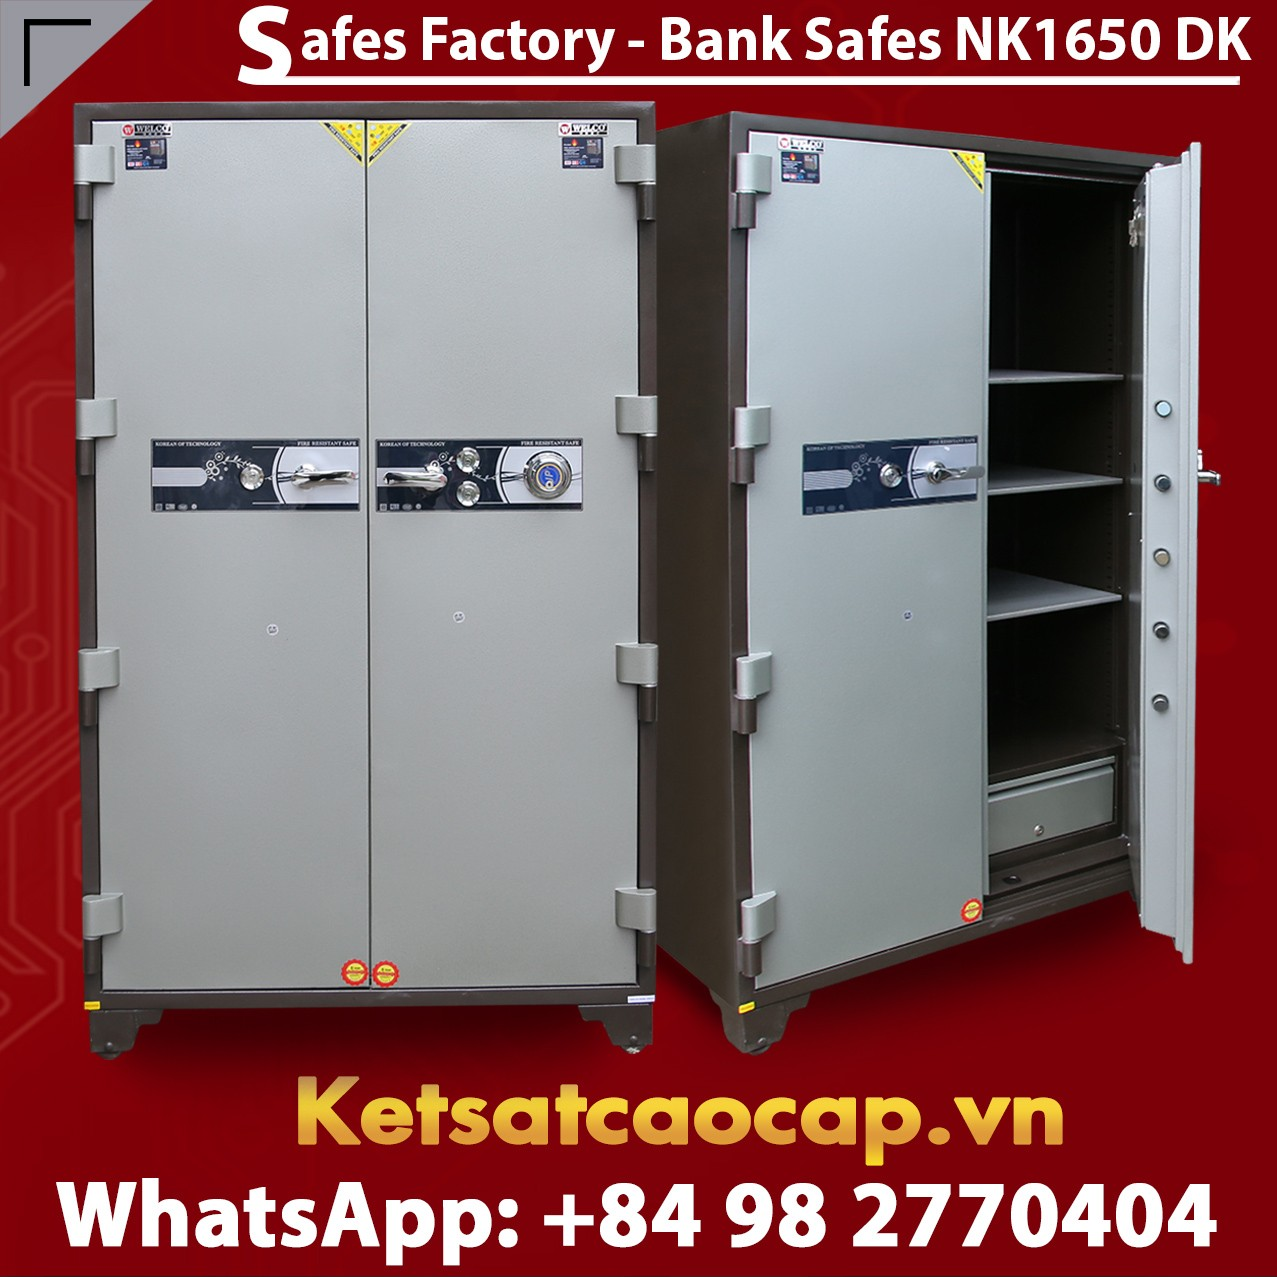 Bank Safes NK 1650 DK Two Door Fingerprint Locking Customized